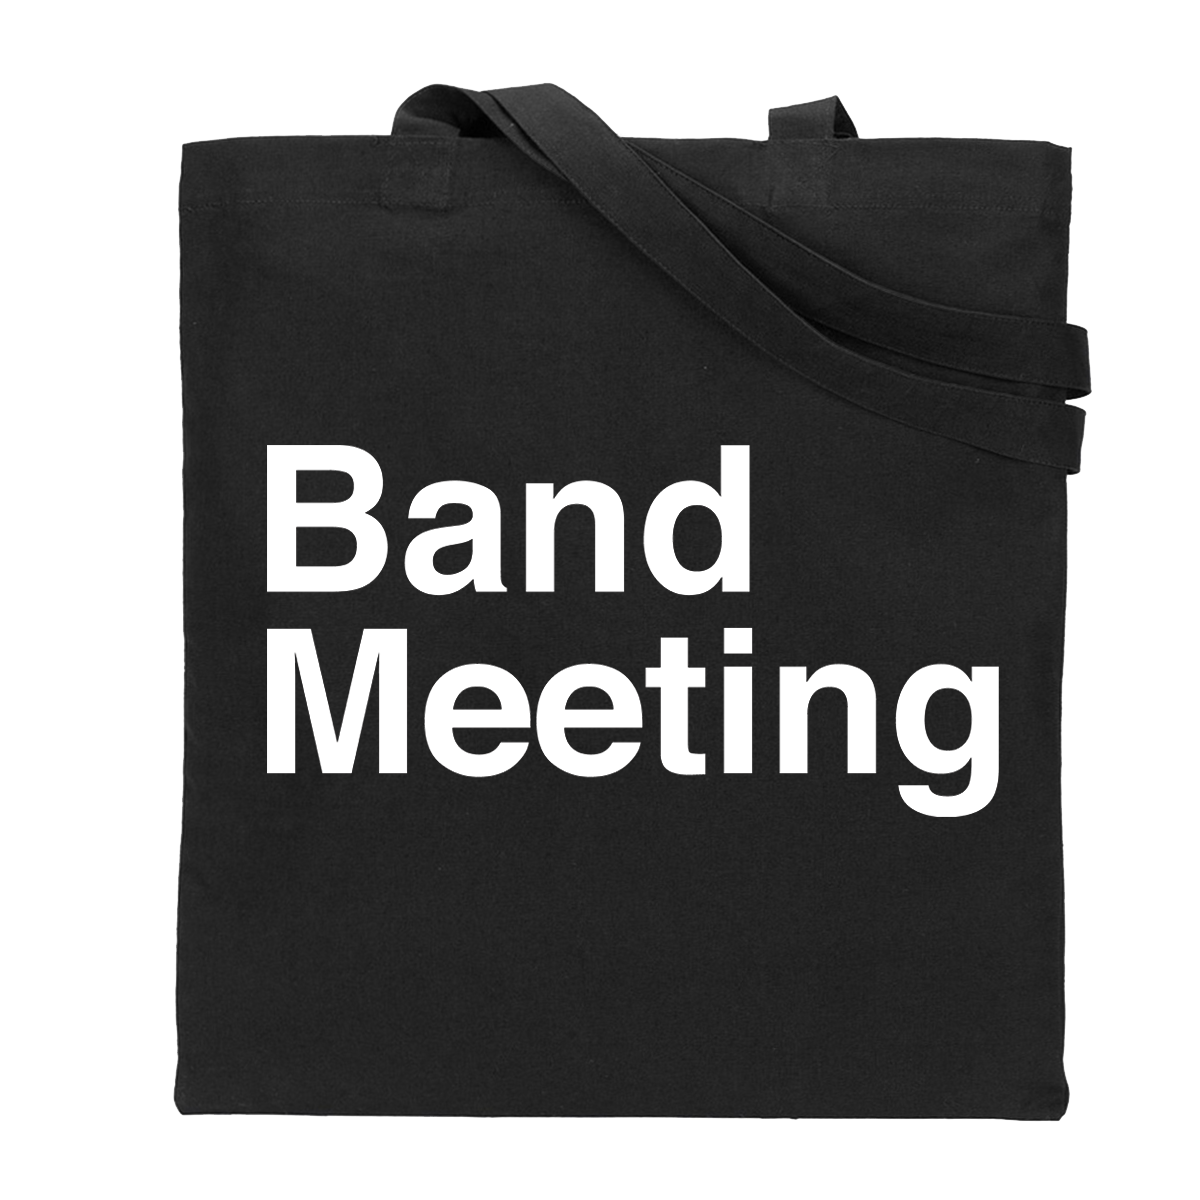 Flight of the Conchords Band Meeting Tote Bag Totebag- Bingo Merch Official Merchandise Shop Official